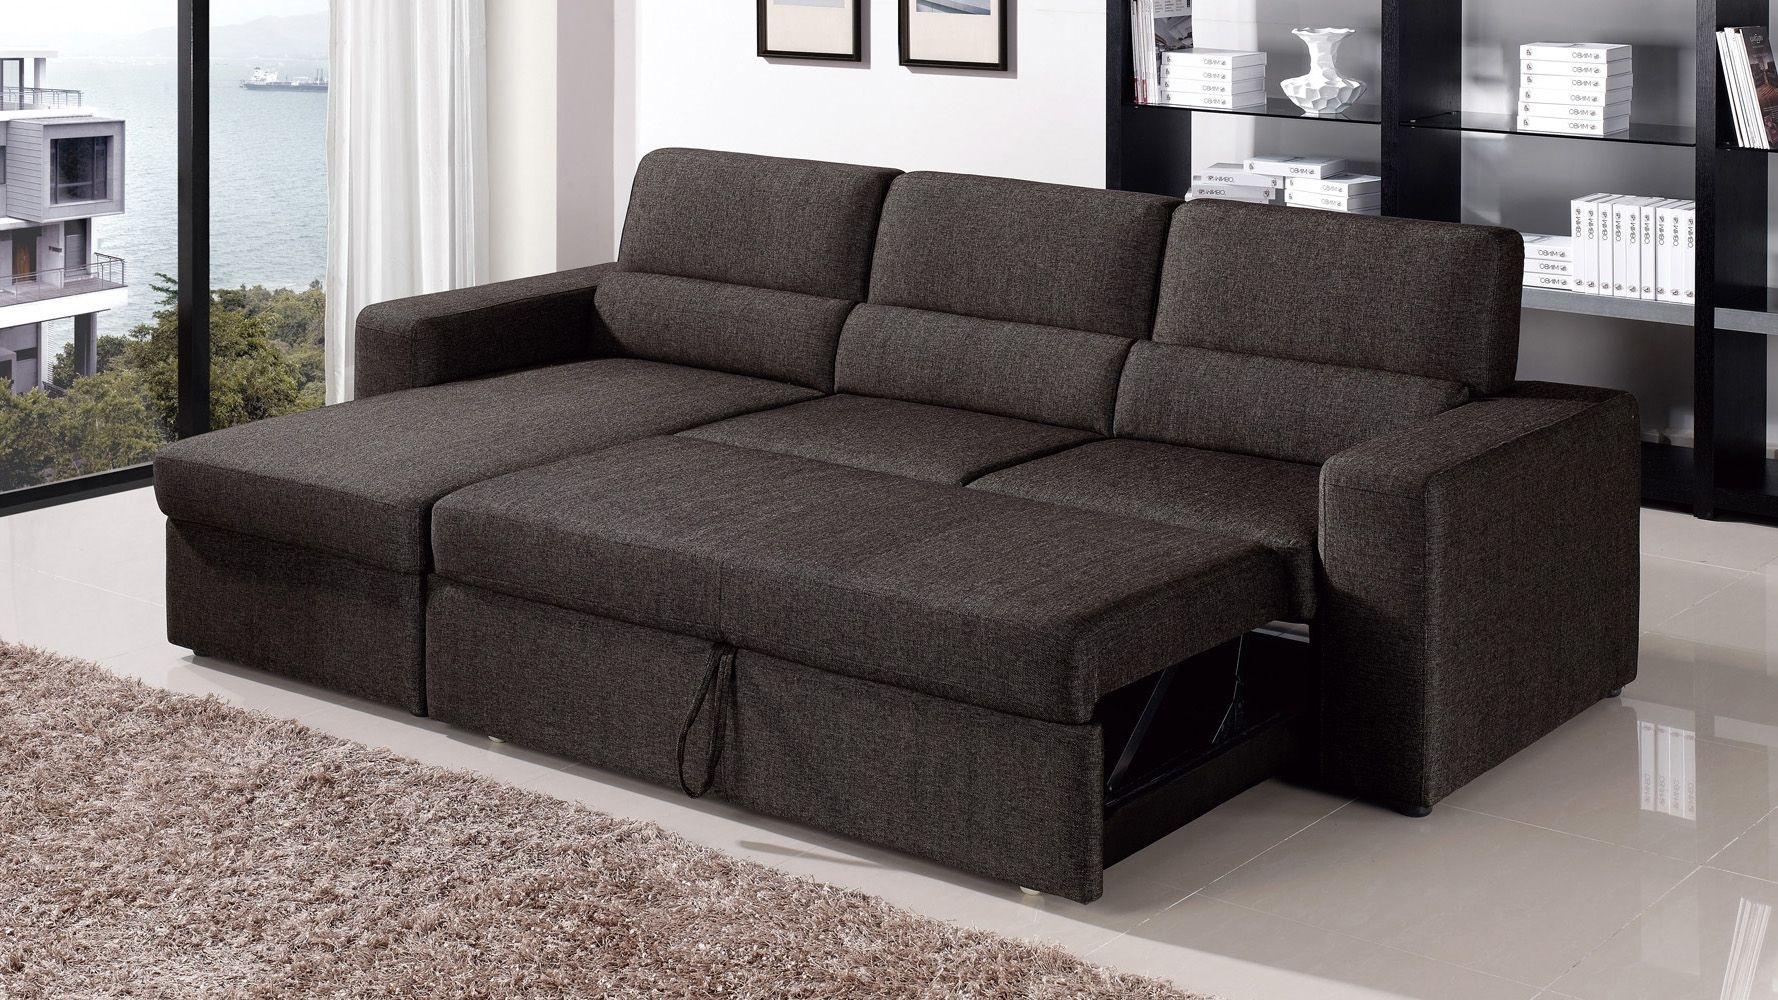 15 Best Collection Of Sleeper Sofas With Chaise With Regard To Most Recent Taren Reversible Sofa/chaise Sleeper Sectionals With Storage Ottoman (Gallery 17 of 20)